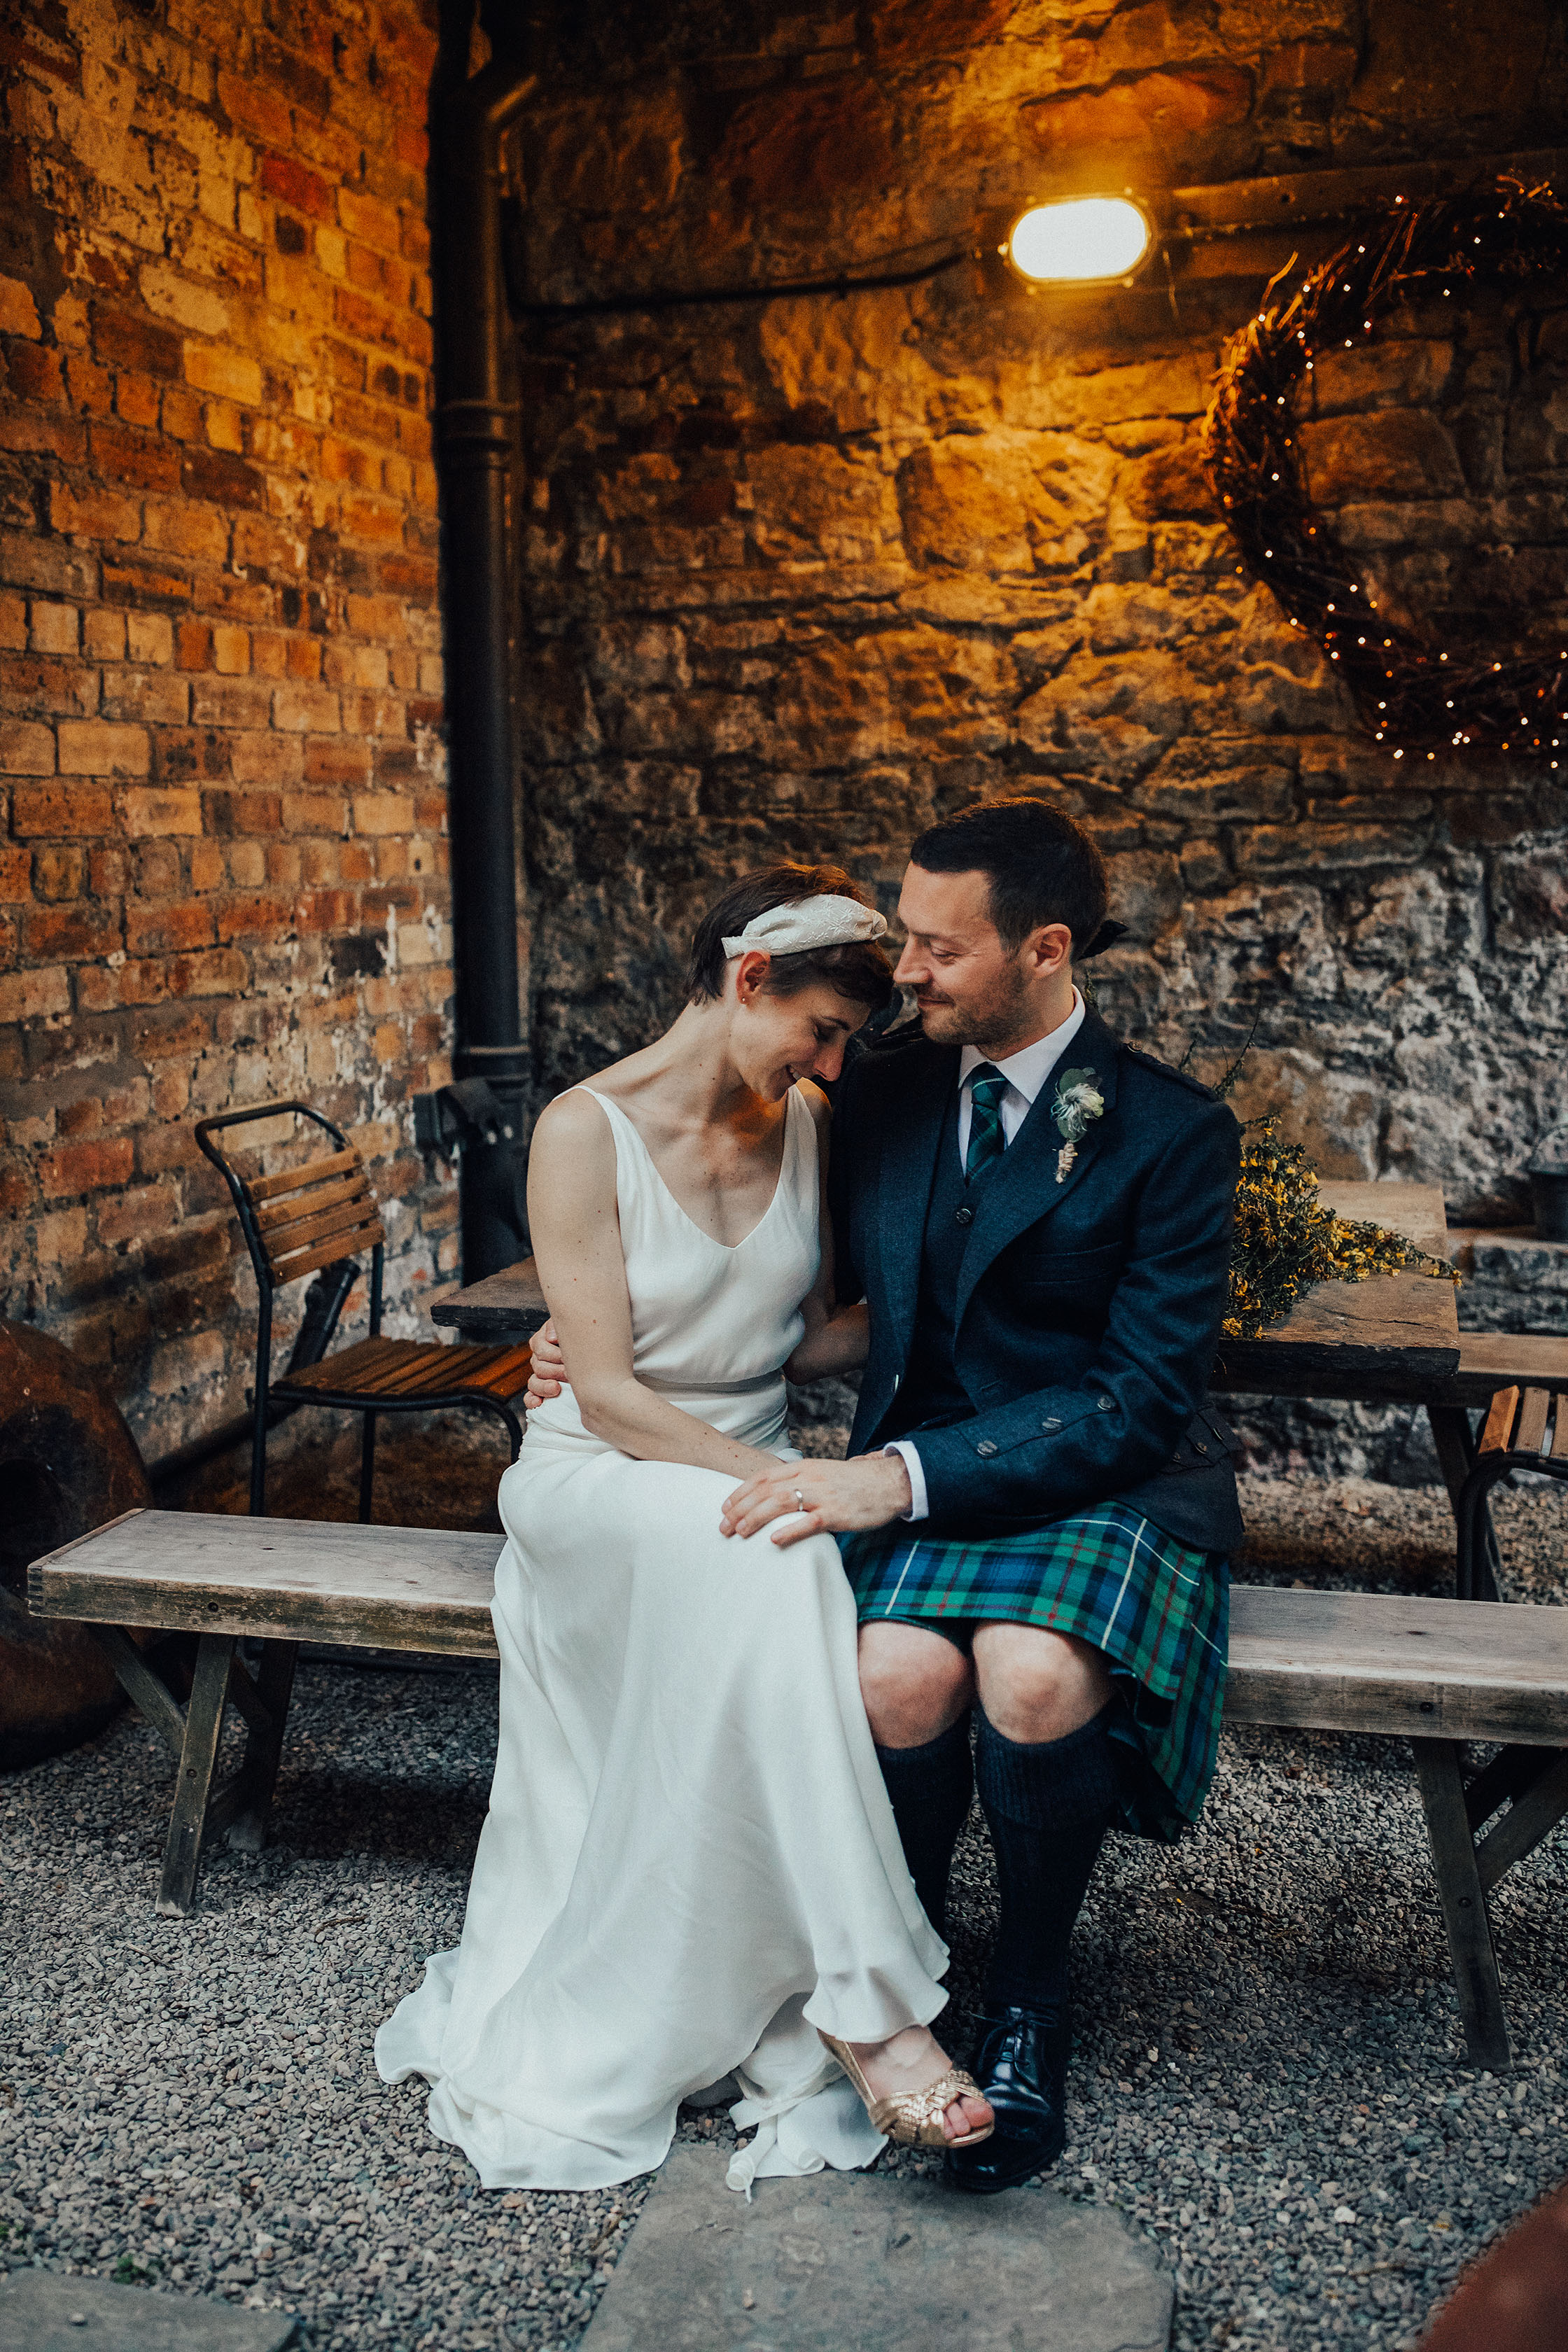 TIMBERYARD_EDINBURGH_WEDDING_PJ_PHILLIPS_PHOTOGRAPHY_203.jpg